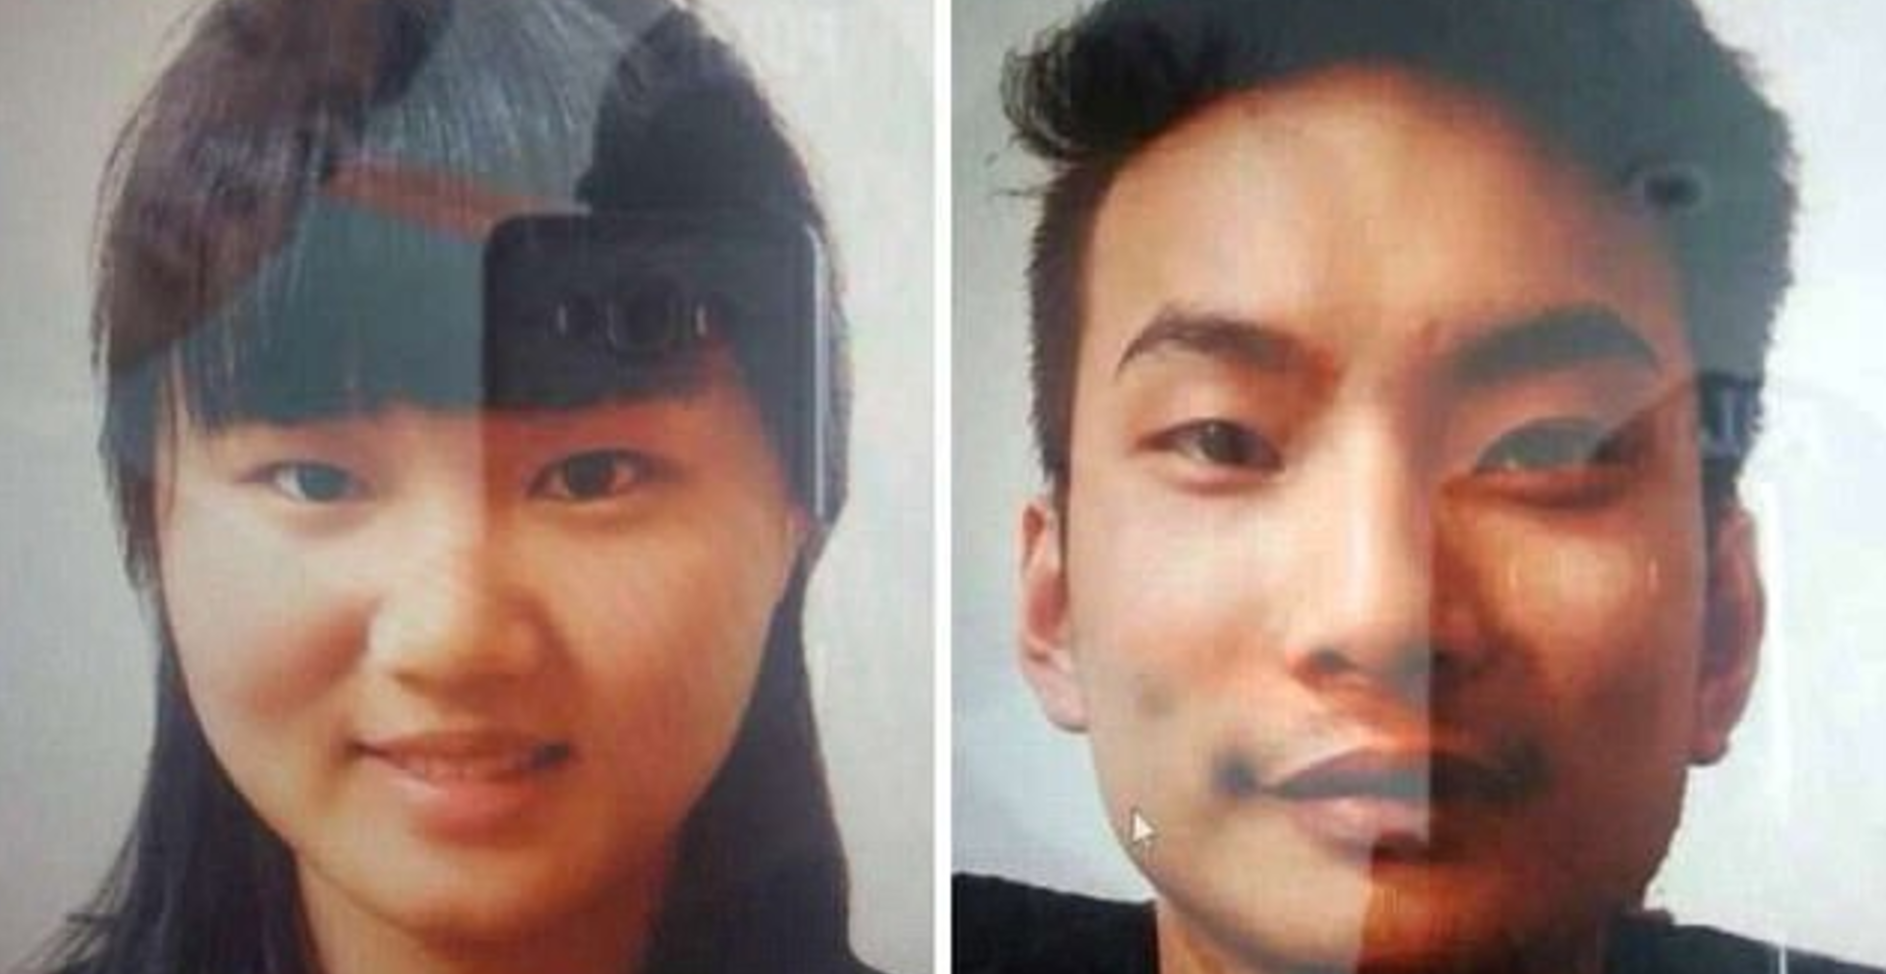 Pakistan Confirms Deaths of Abducted Chinese Nationals